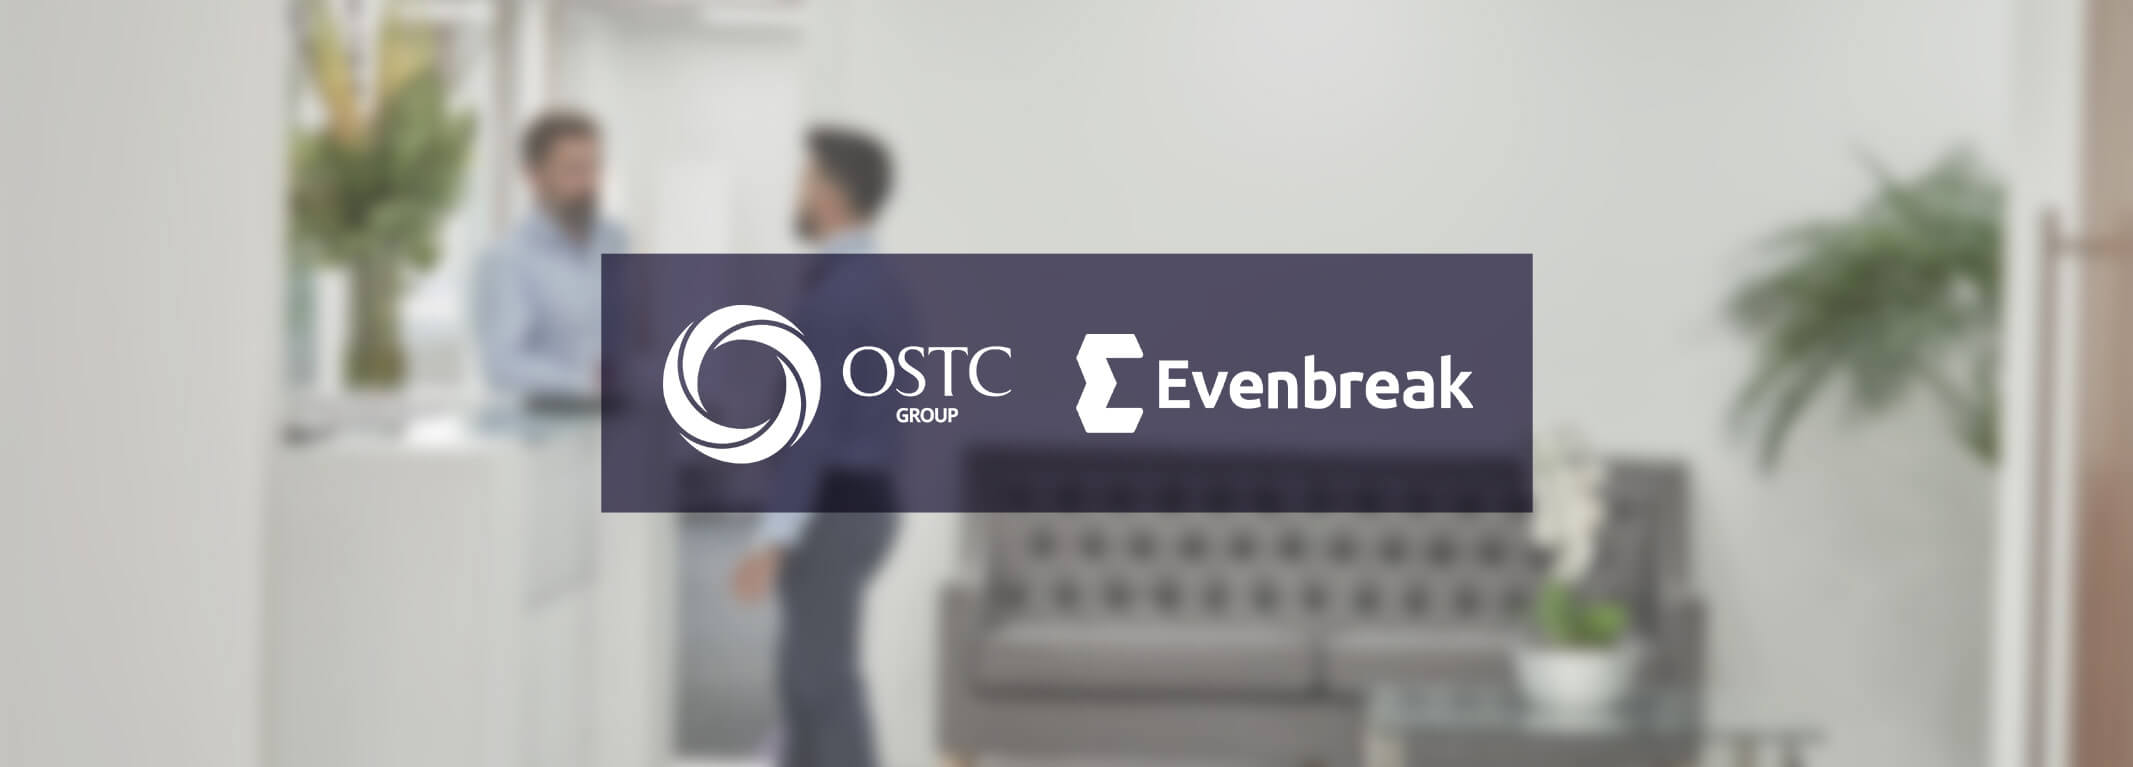 OSTC and Evenbreak logos